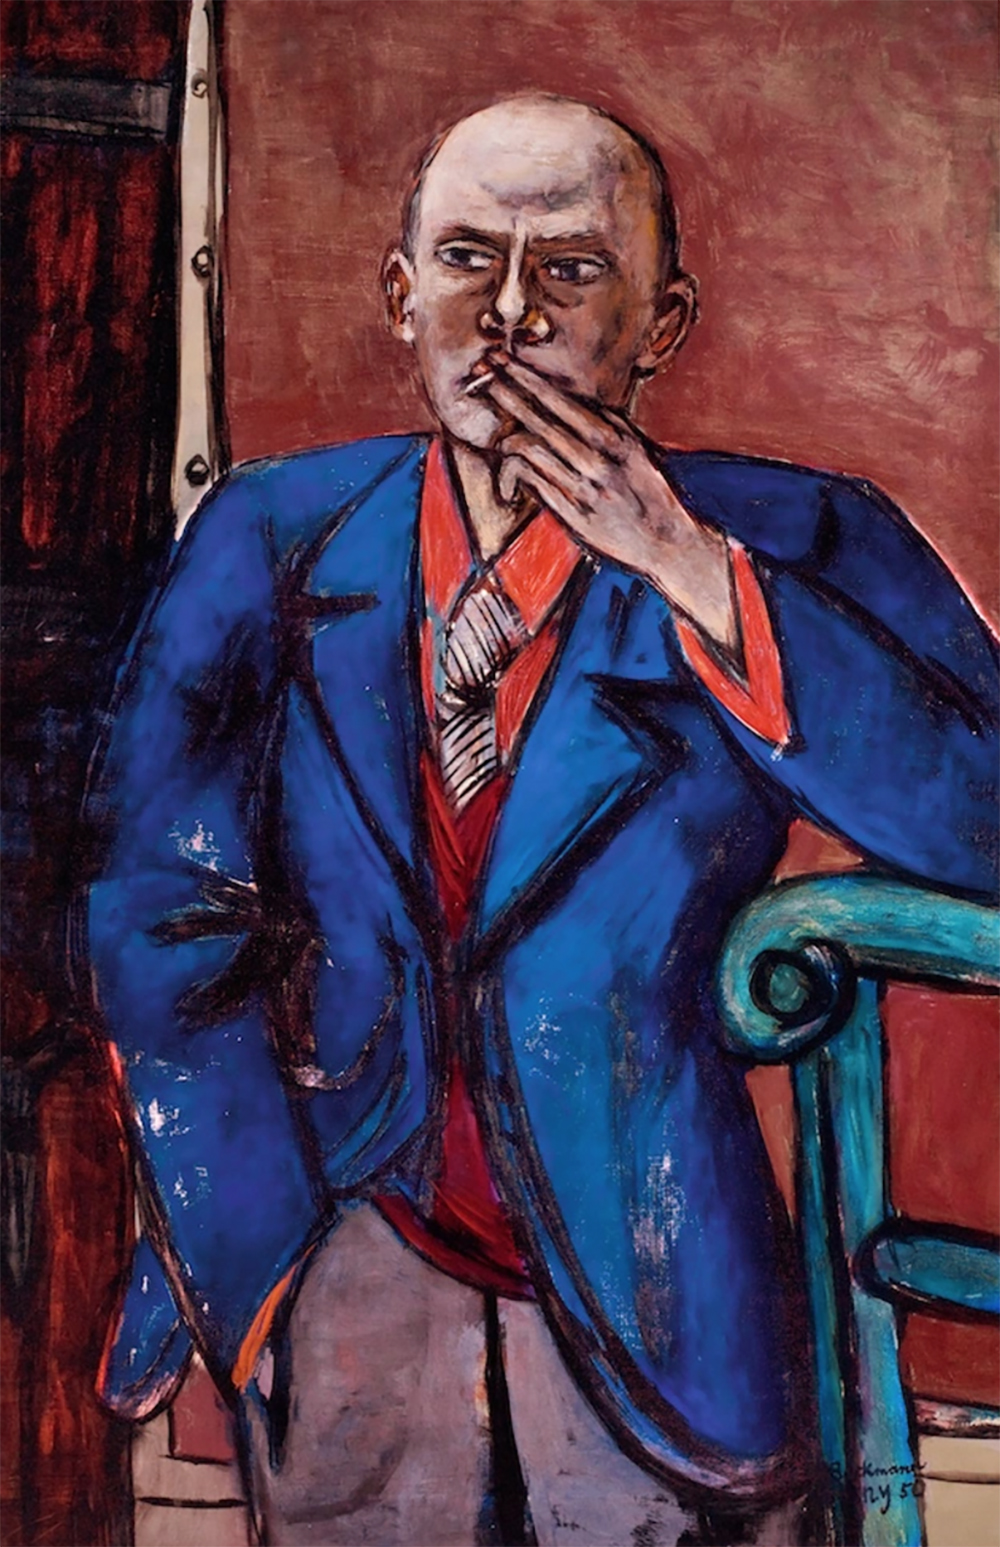 Image: Max Beckmann (German, Leipzig 1884–1950 New York). Self-Portrait in Blue Jacket, 1950. Oil on canvas. Saint Louis Art Museum, Bequest of Morton D. May. SL.9.2016.24.1, © 2016 Artists Rights Society (ARS), New York / VG Bild-Kunst, Bonn. Courtesy of The Metropolitan Museum of Art.